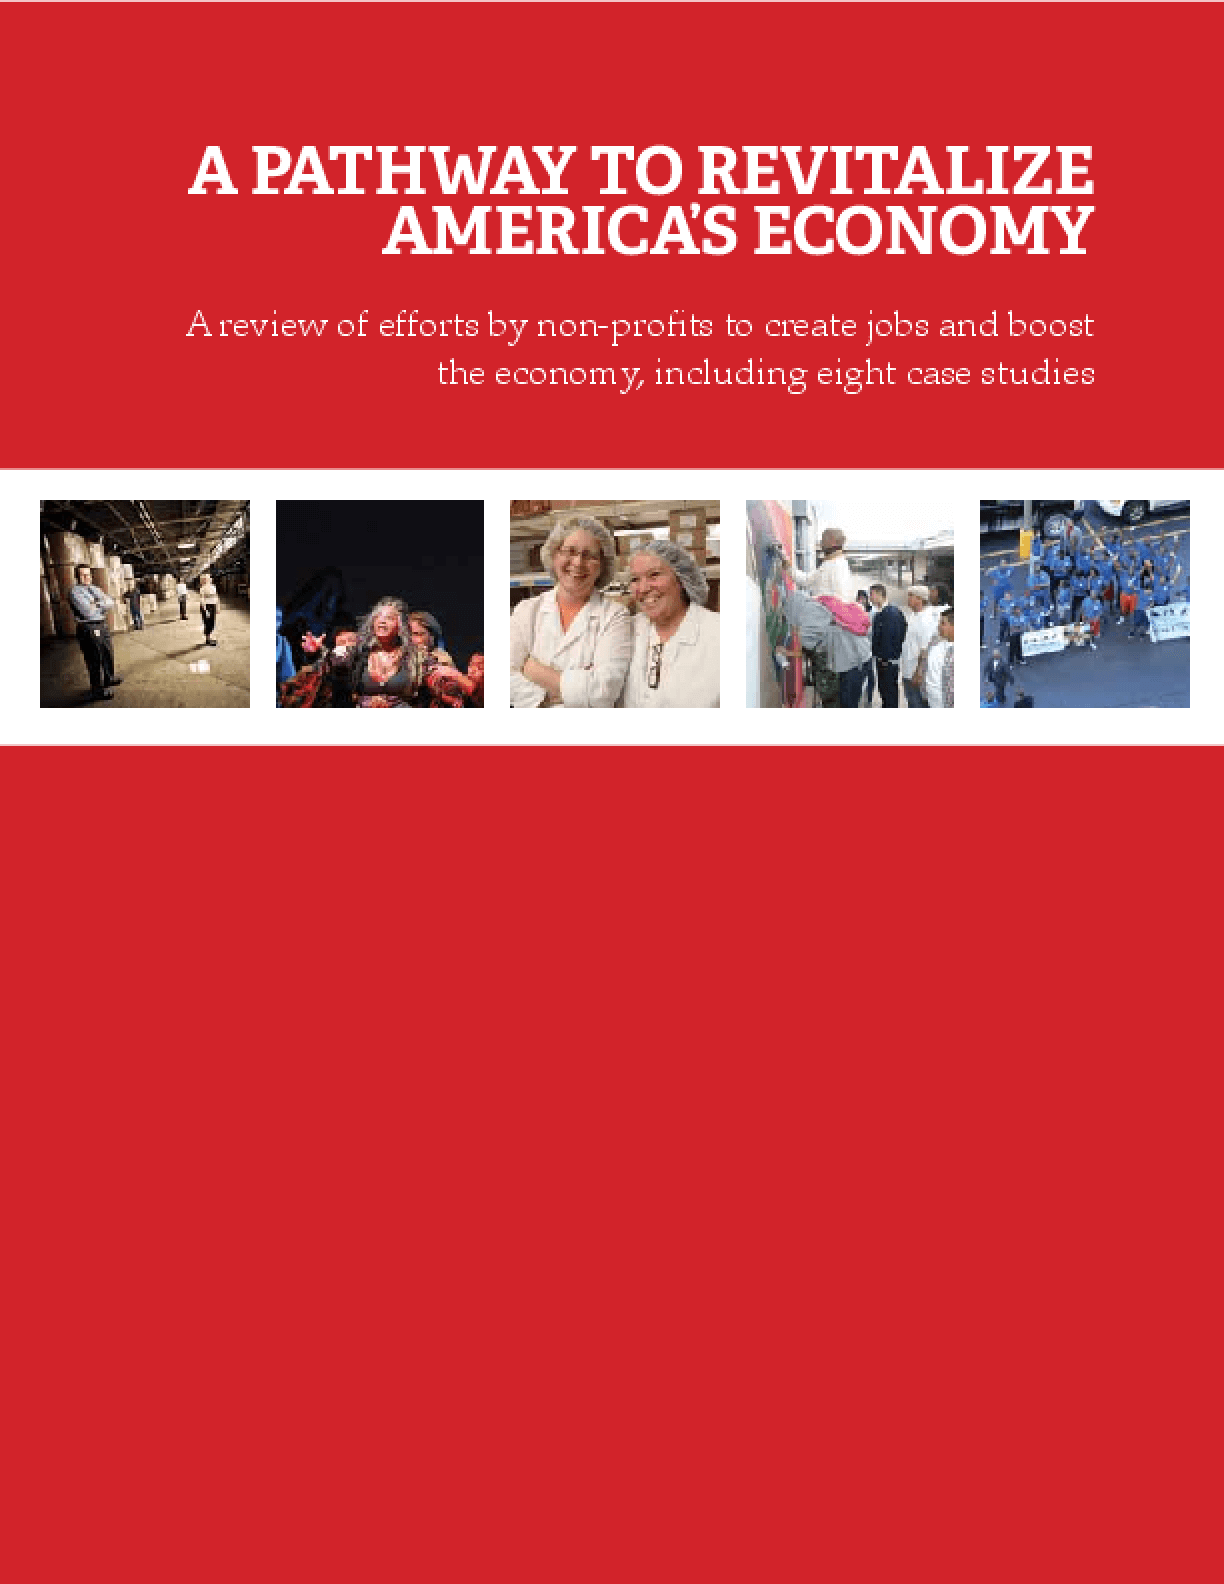 A Pathway to Revitalize America's Economy: A Review of Efforts by Non-profits to Create Jobs and Boost the Economy, Including Eight Case Studies